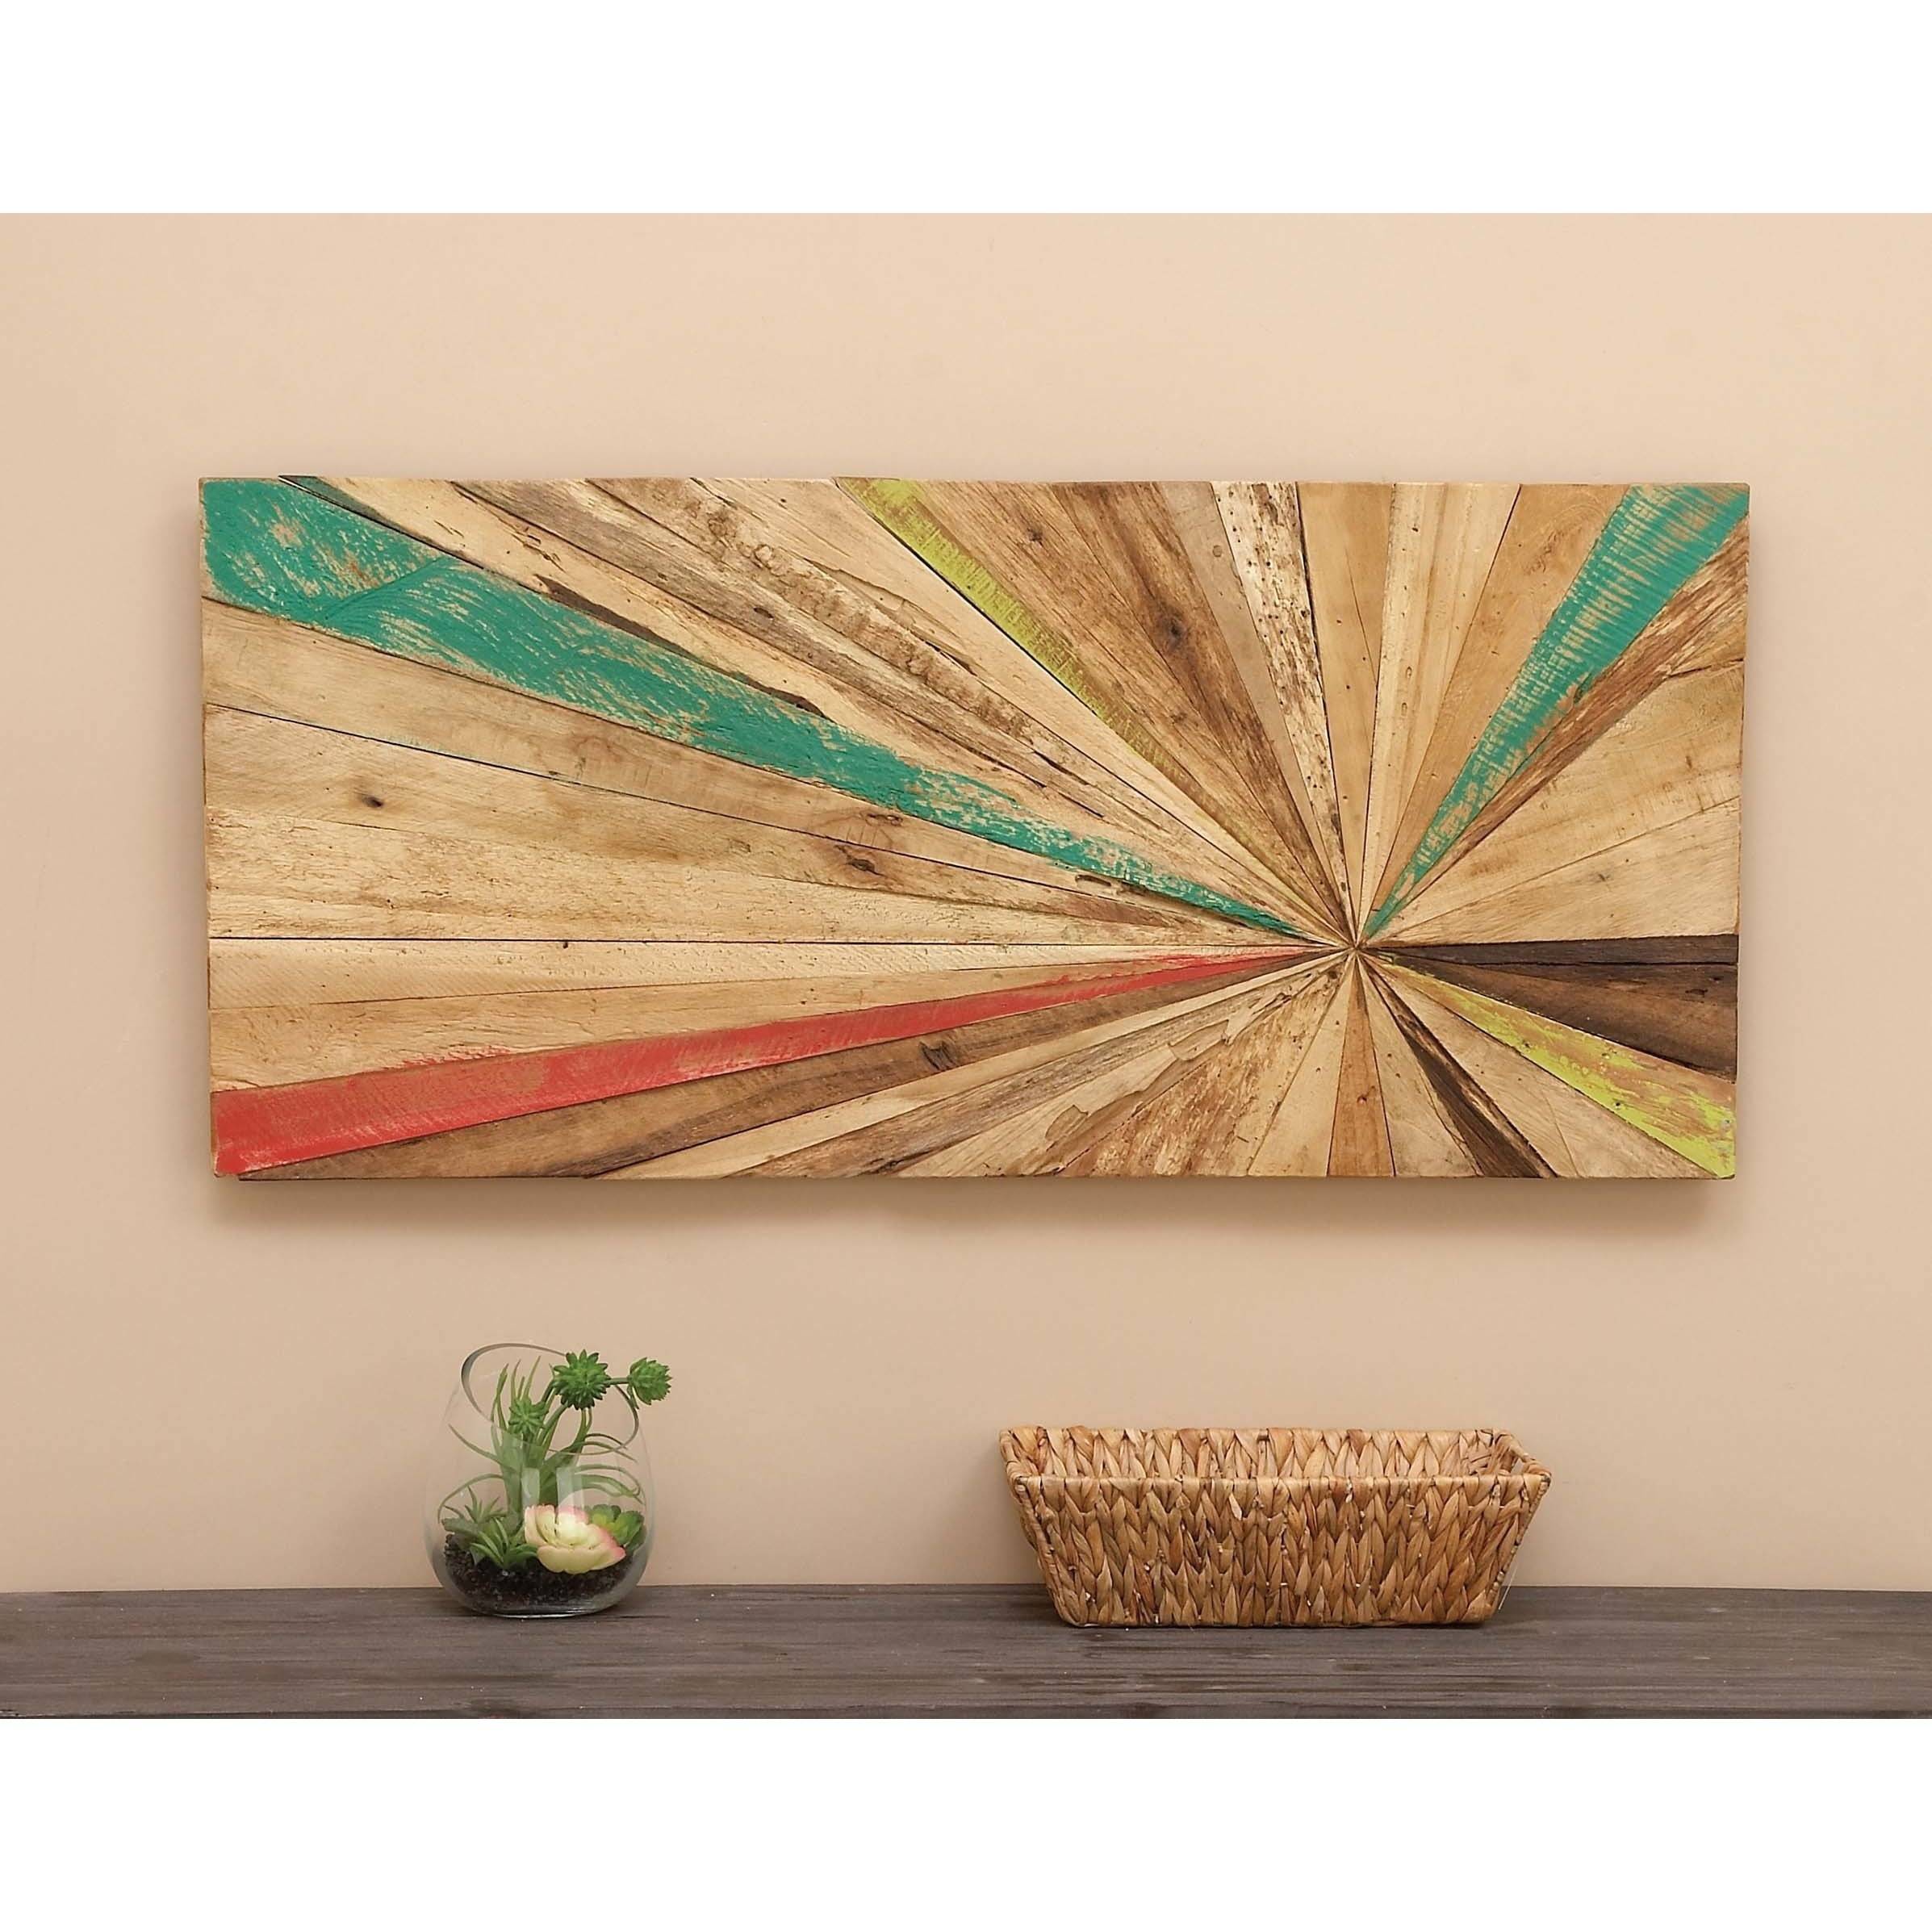 Reclaimed Wood Wall Art - Free Shipping Today - Overstock.com - 17668284